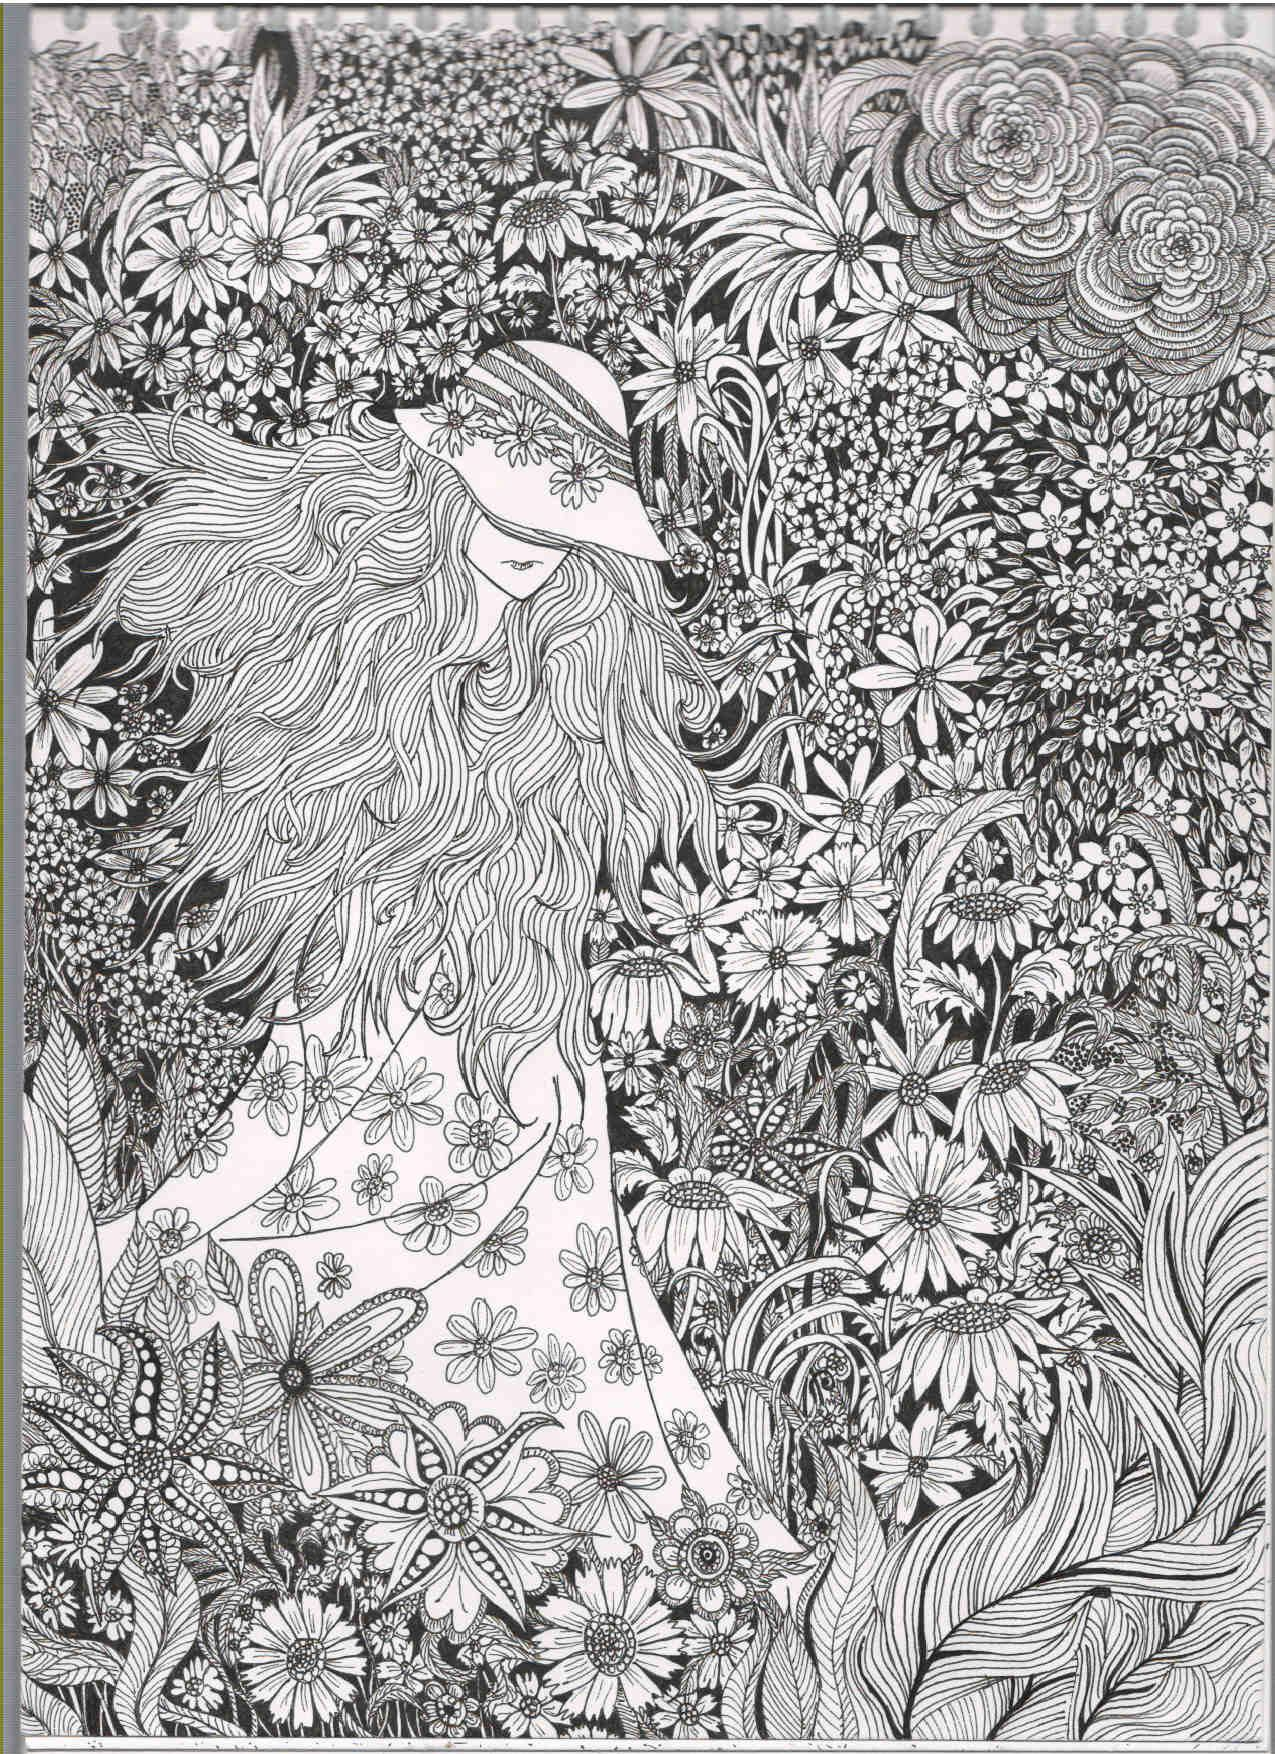 Very Detailed And Beautiful I Can T Wait To Get Started On This One Coloring Pages Coloring Pages For Grown Ups Coloring Books